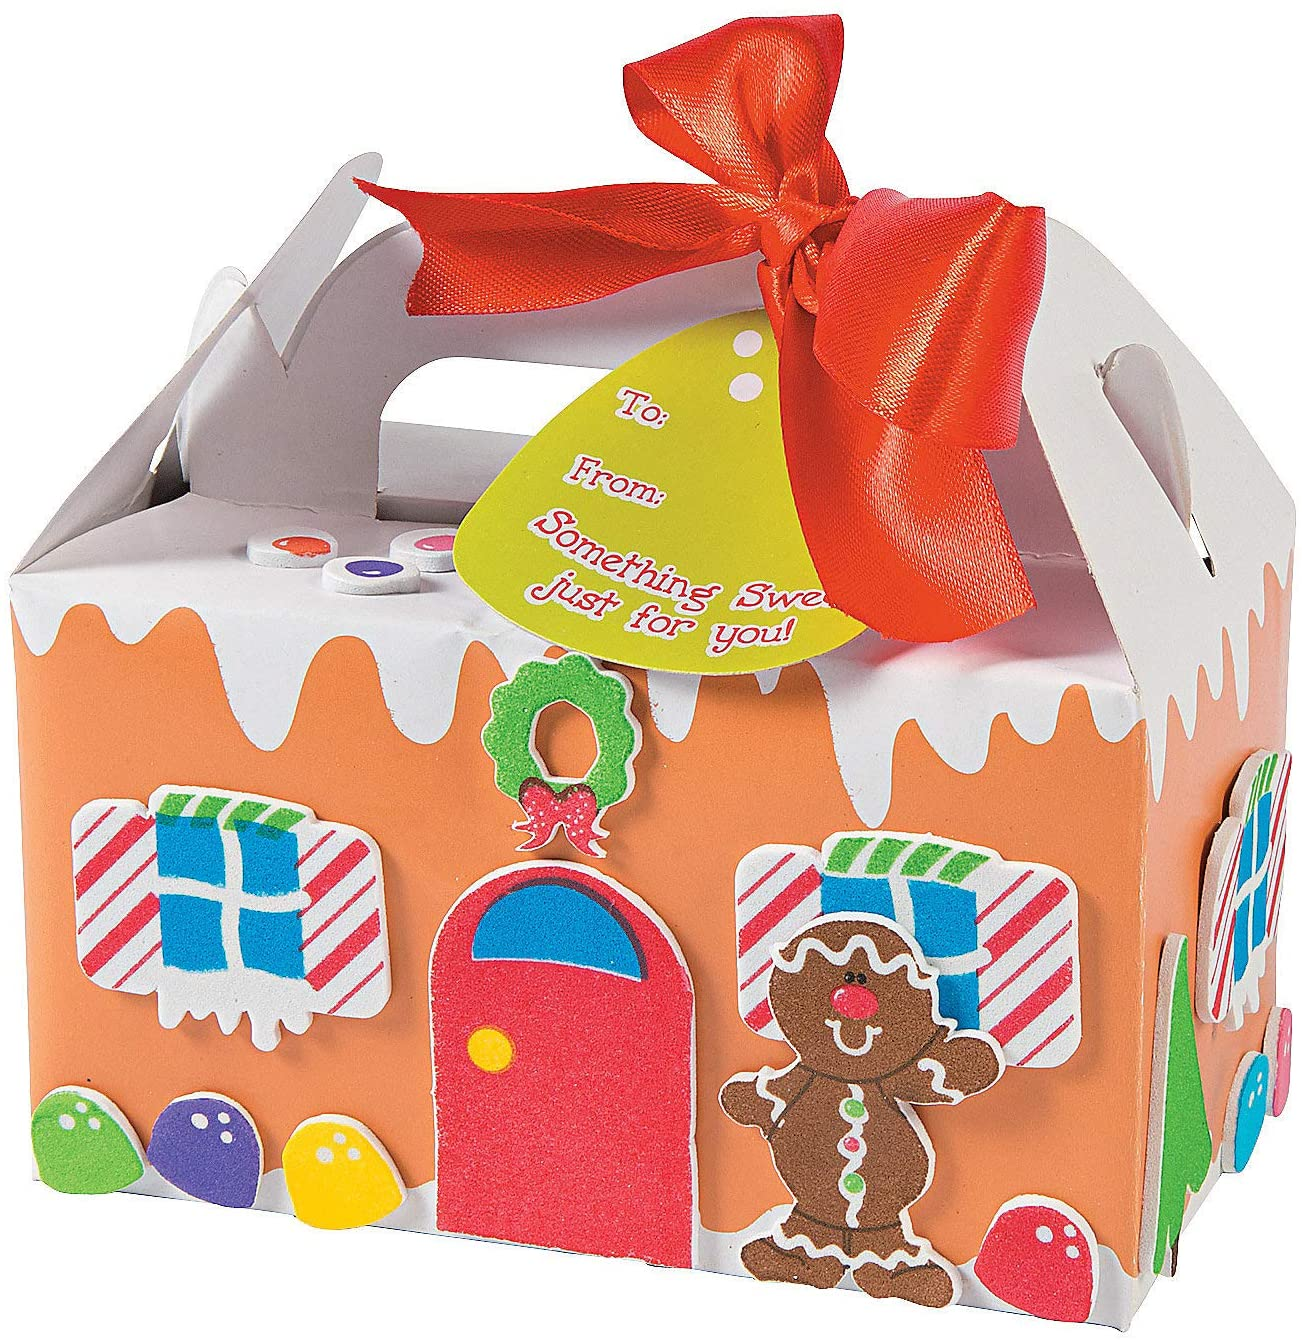 Gingerbread Treat Box Kids Craft Kit - Crafts for Kids and Fun Home Activities